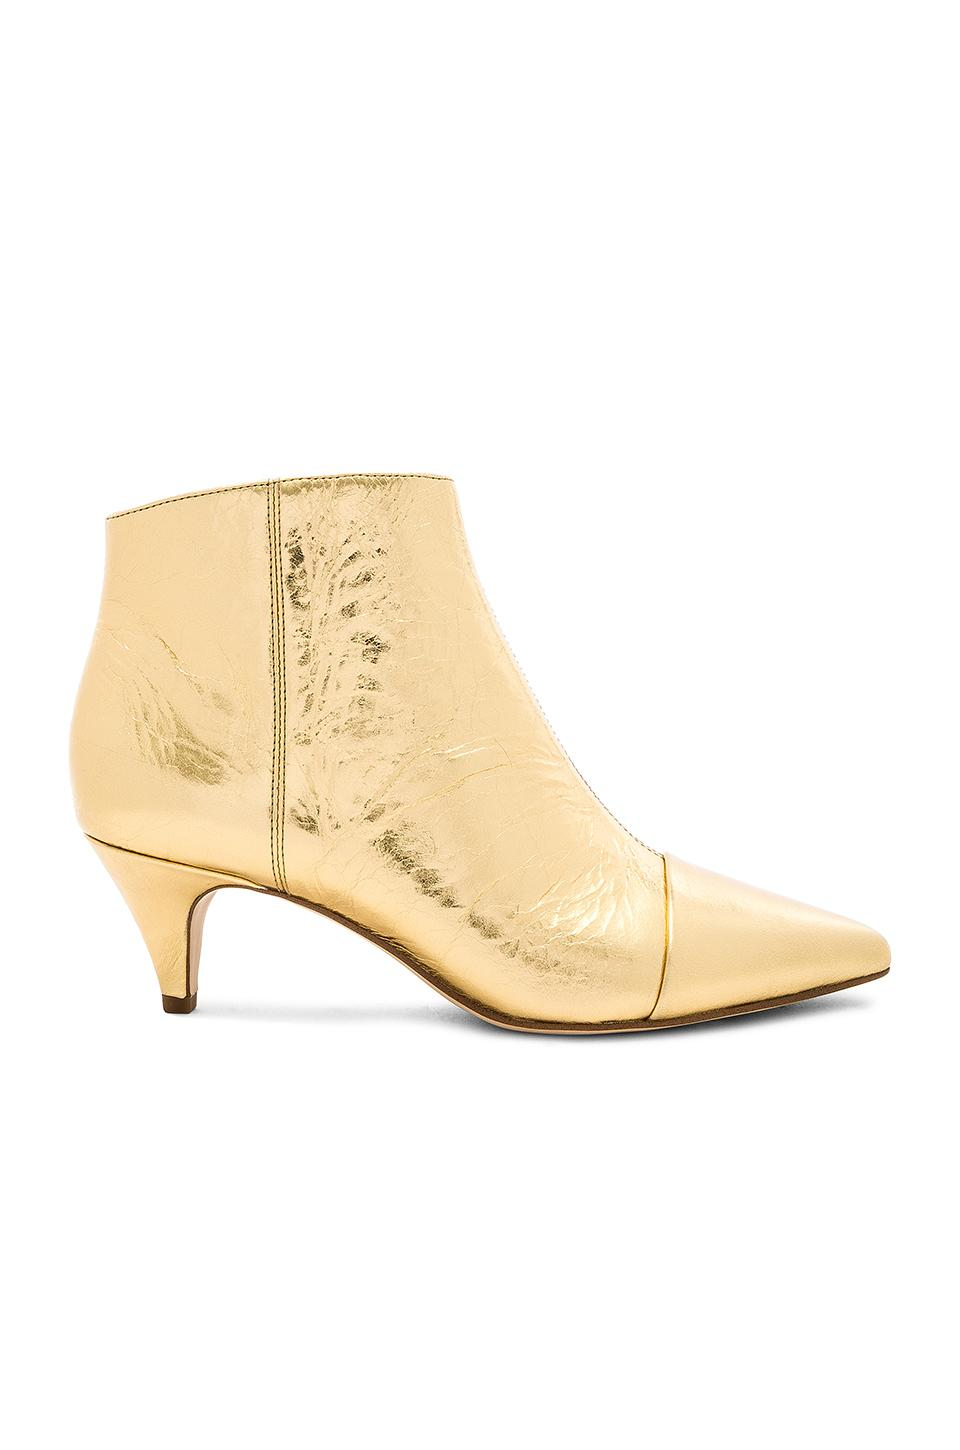 739ec1a97549e Sam Edelman Kinzey Boot In Metallic Gold